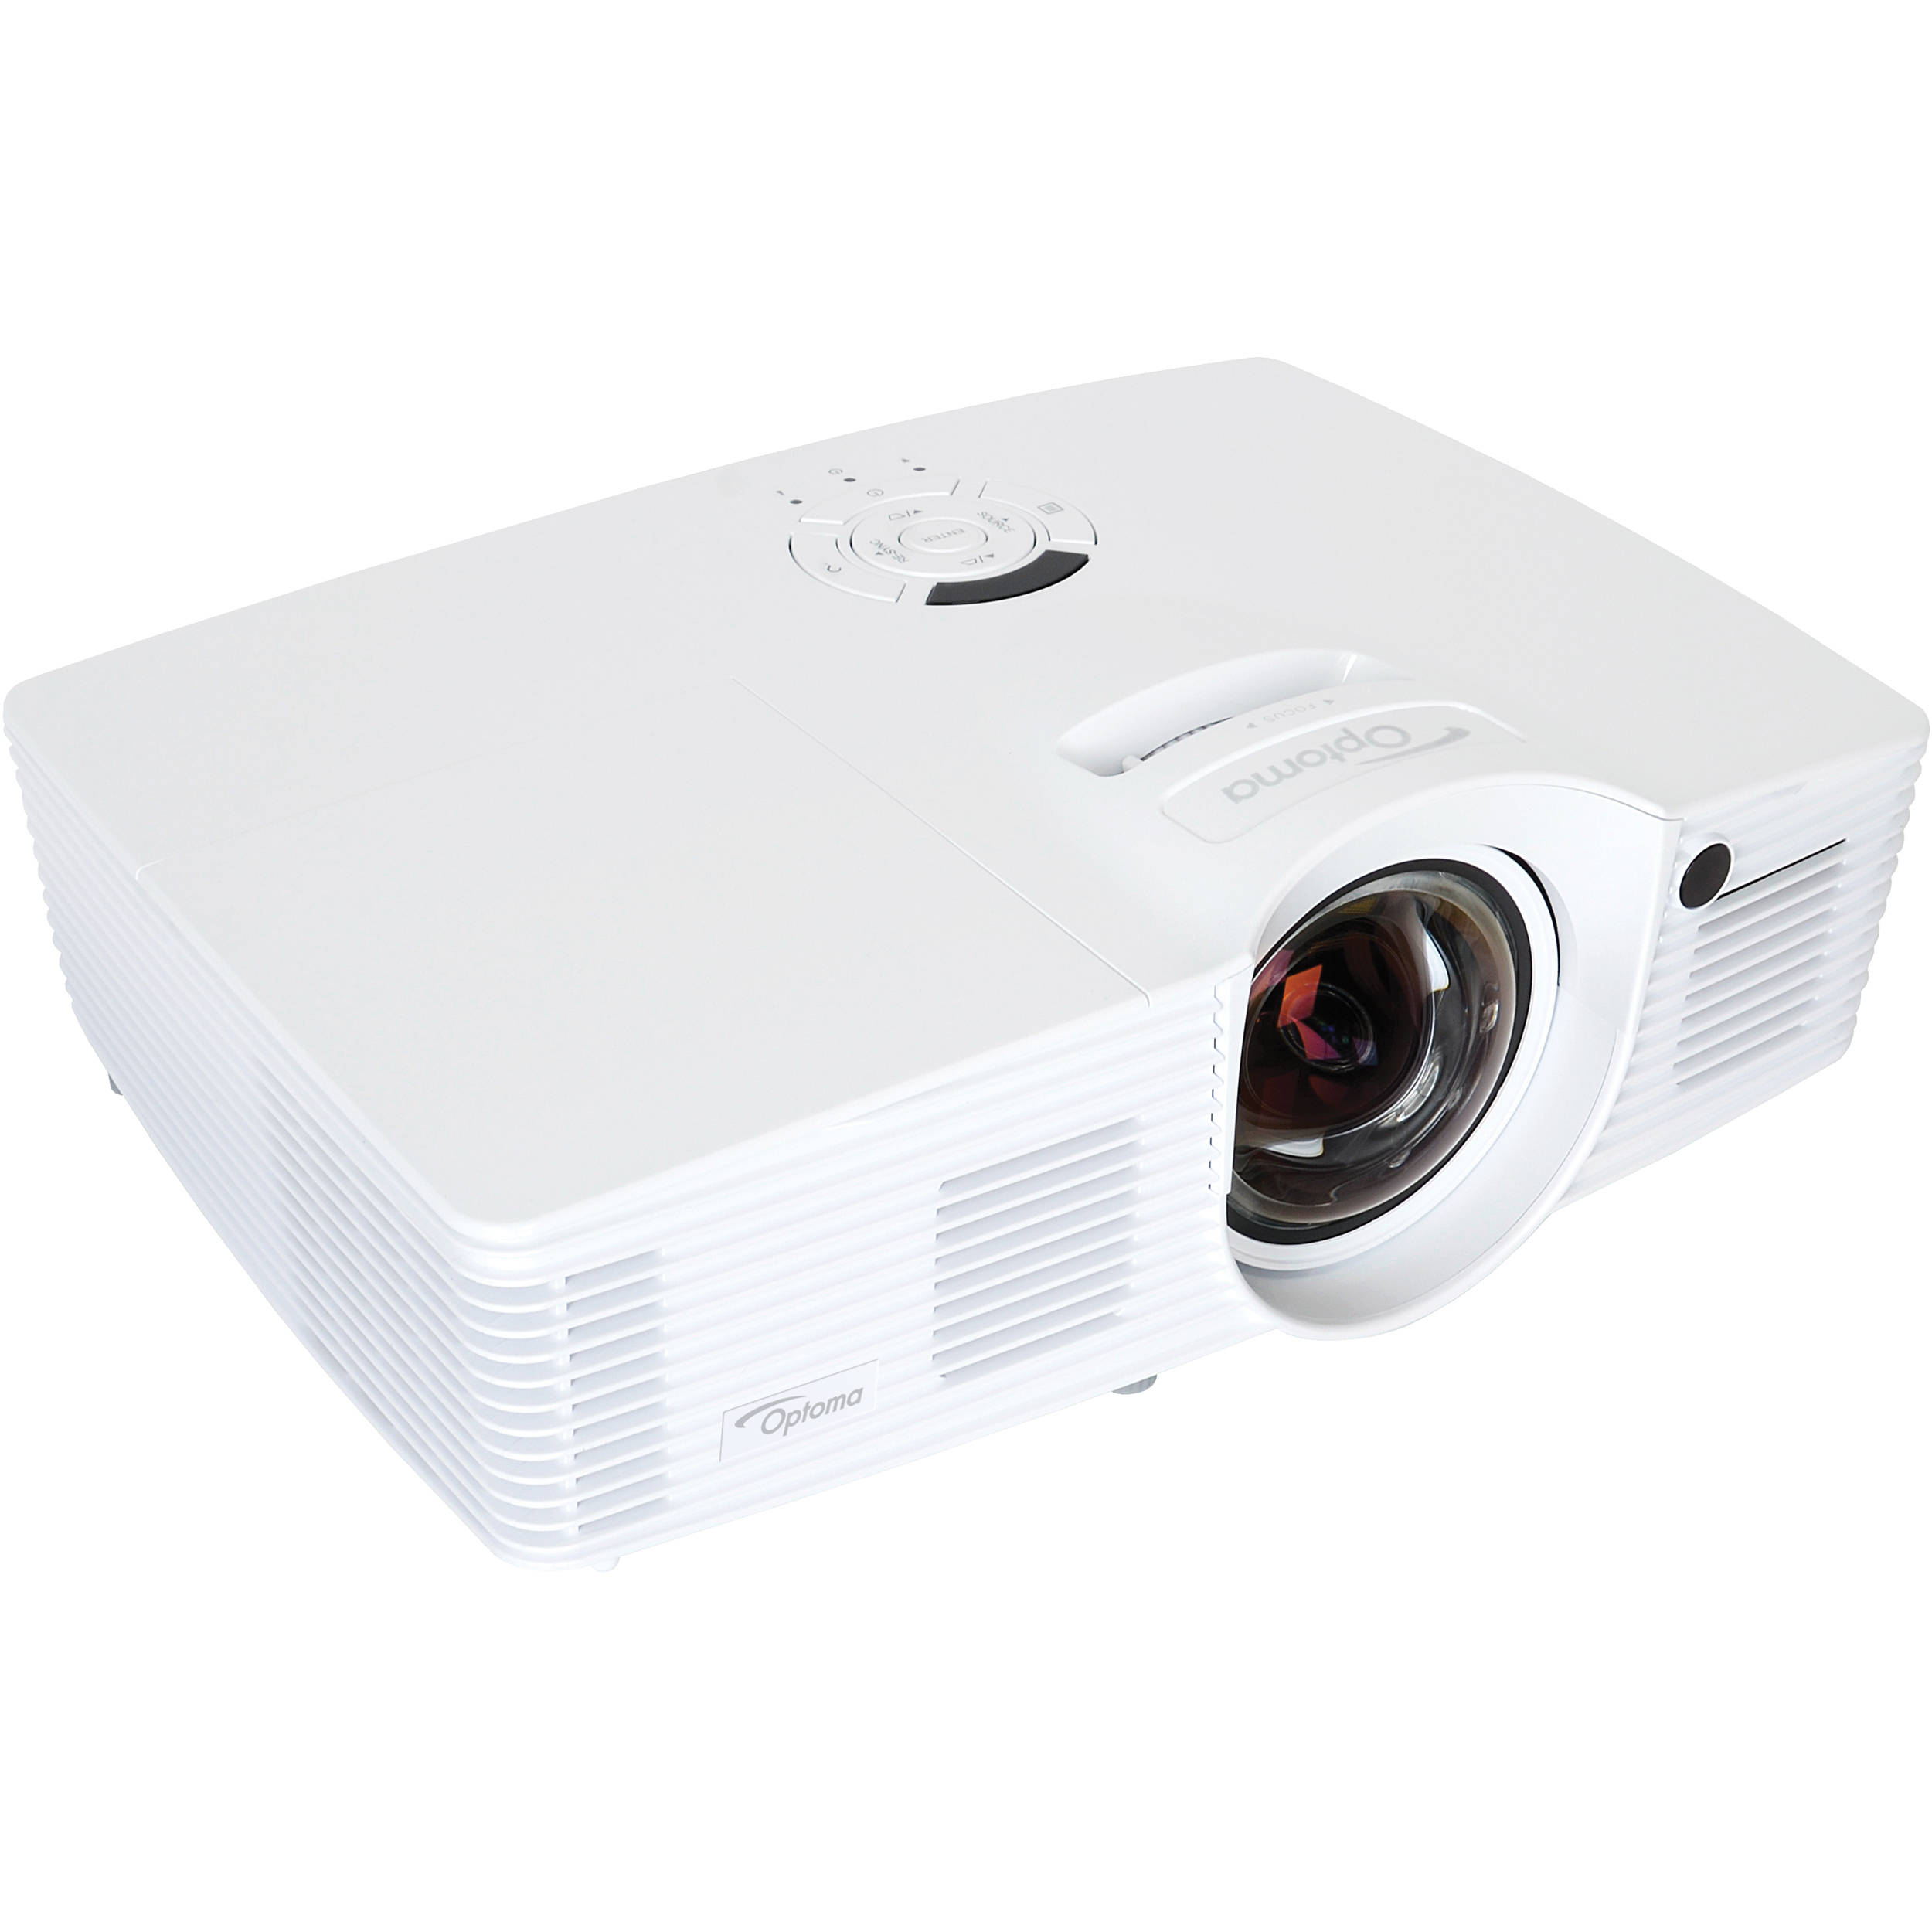 Optoma technology eh200st 3000 lumen full hd 3d eh200st b h for Hd video projector